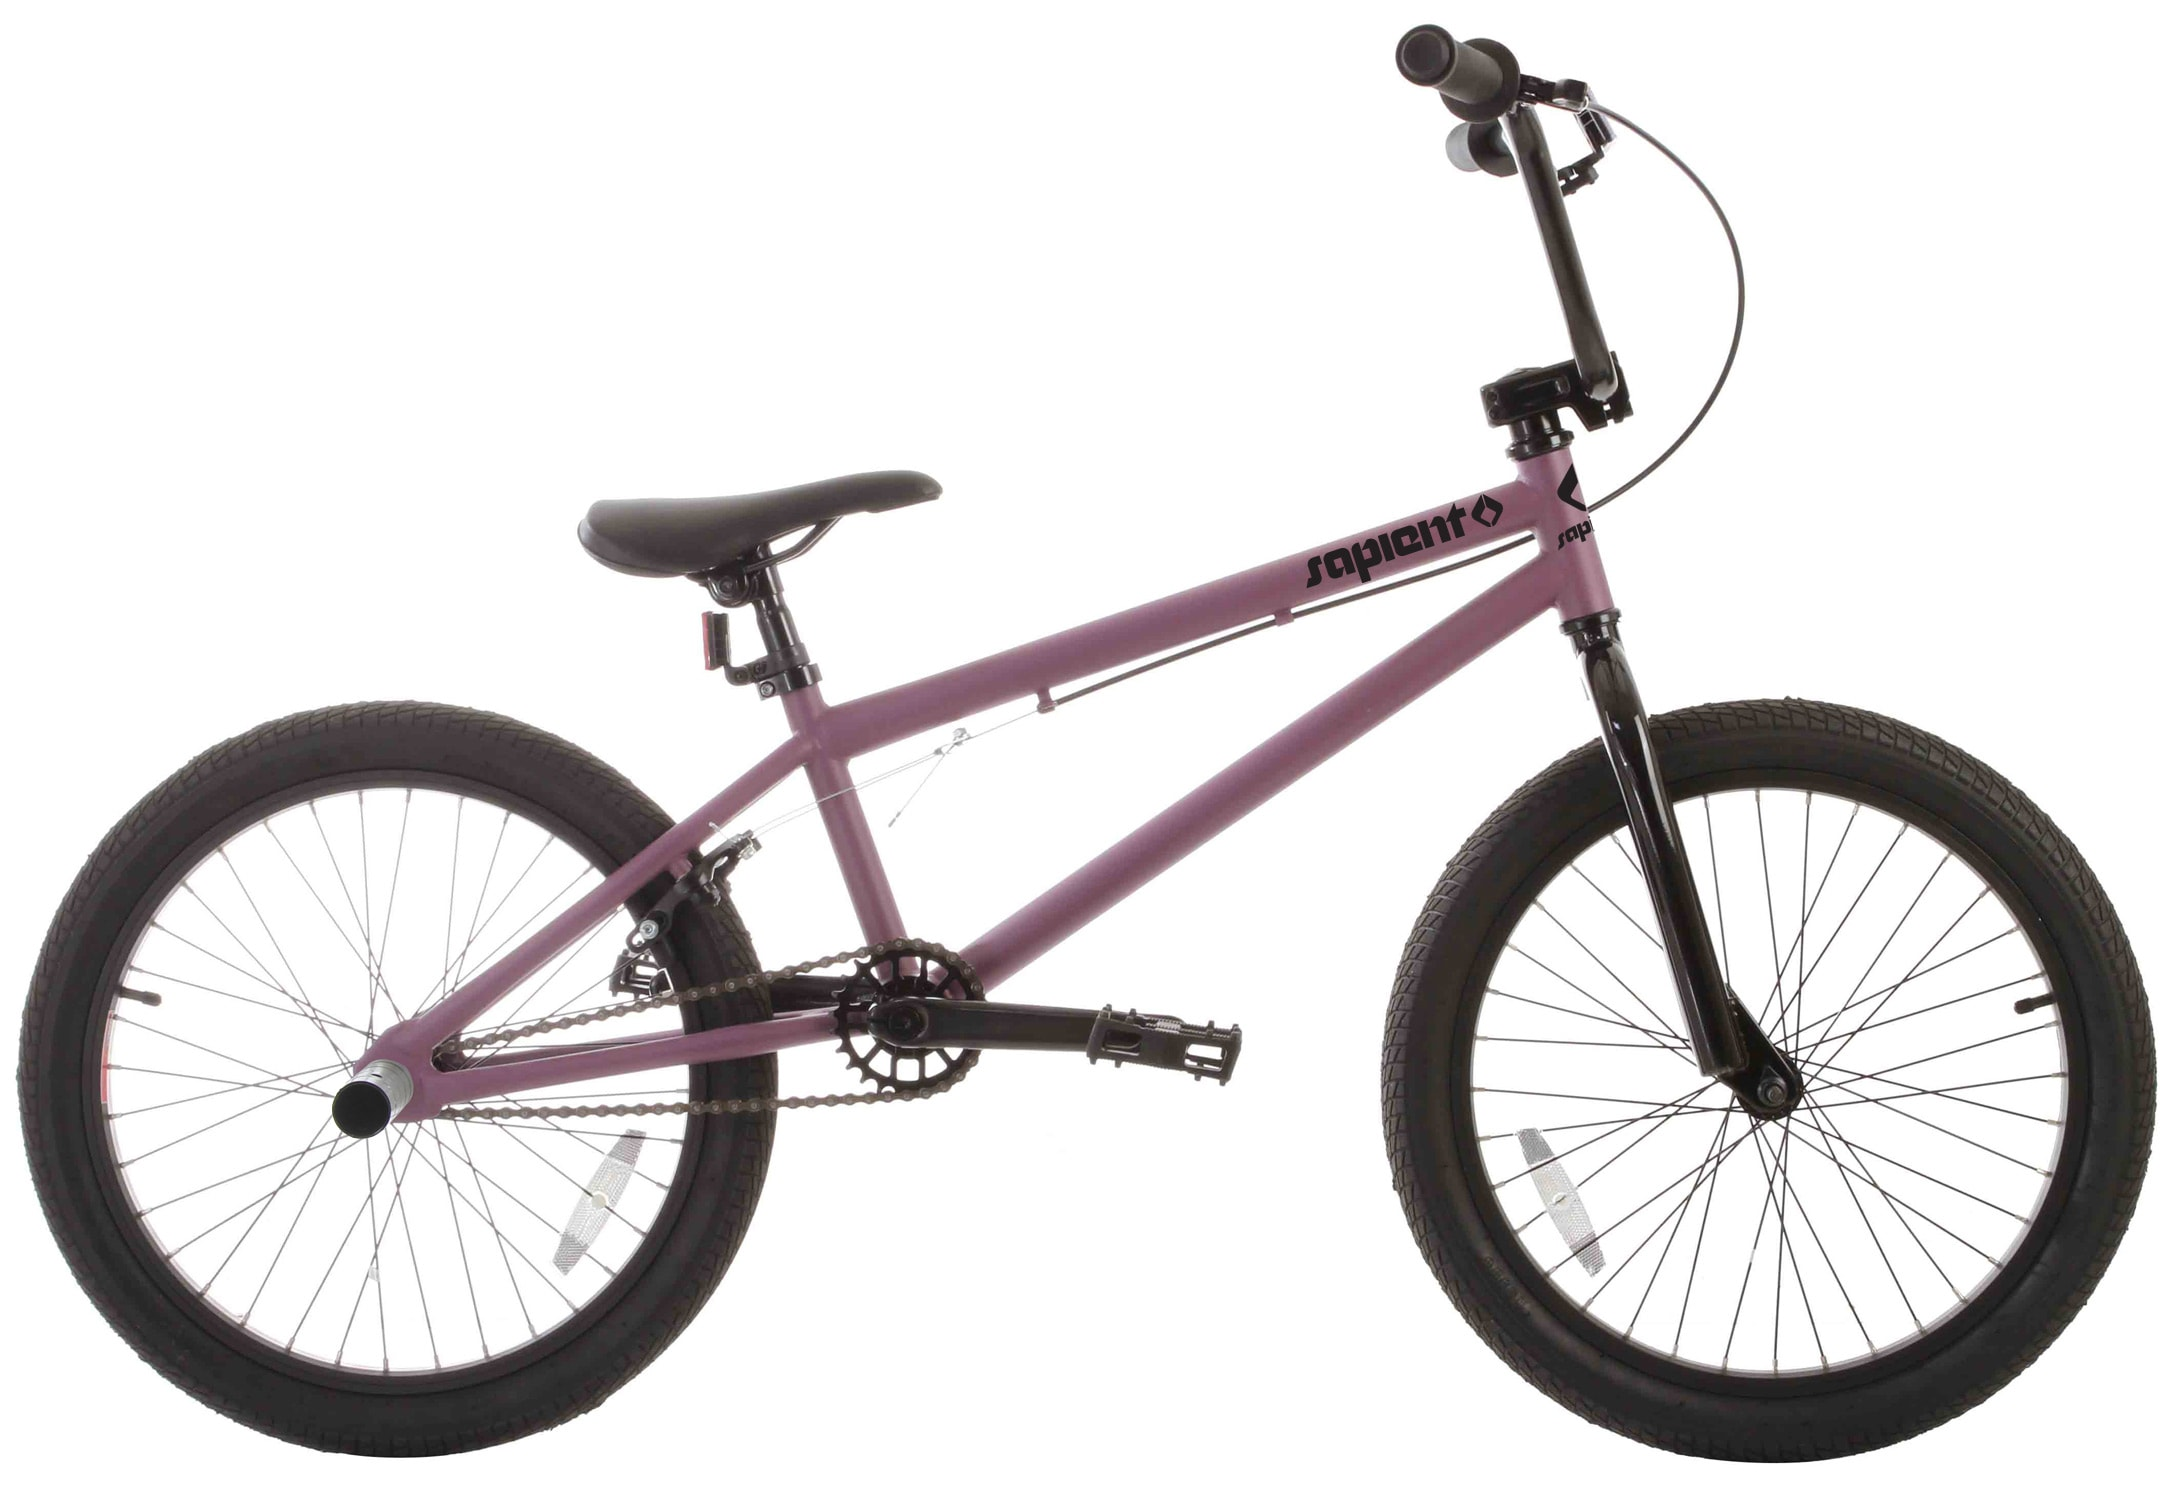 Bmx Bikes For Sale Under 100 Dollars Sapient Lumino Pro X BMX Bike